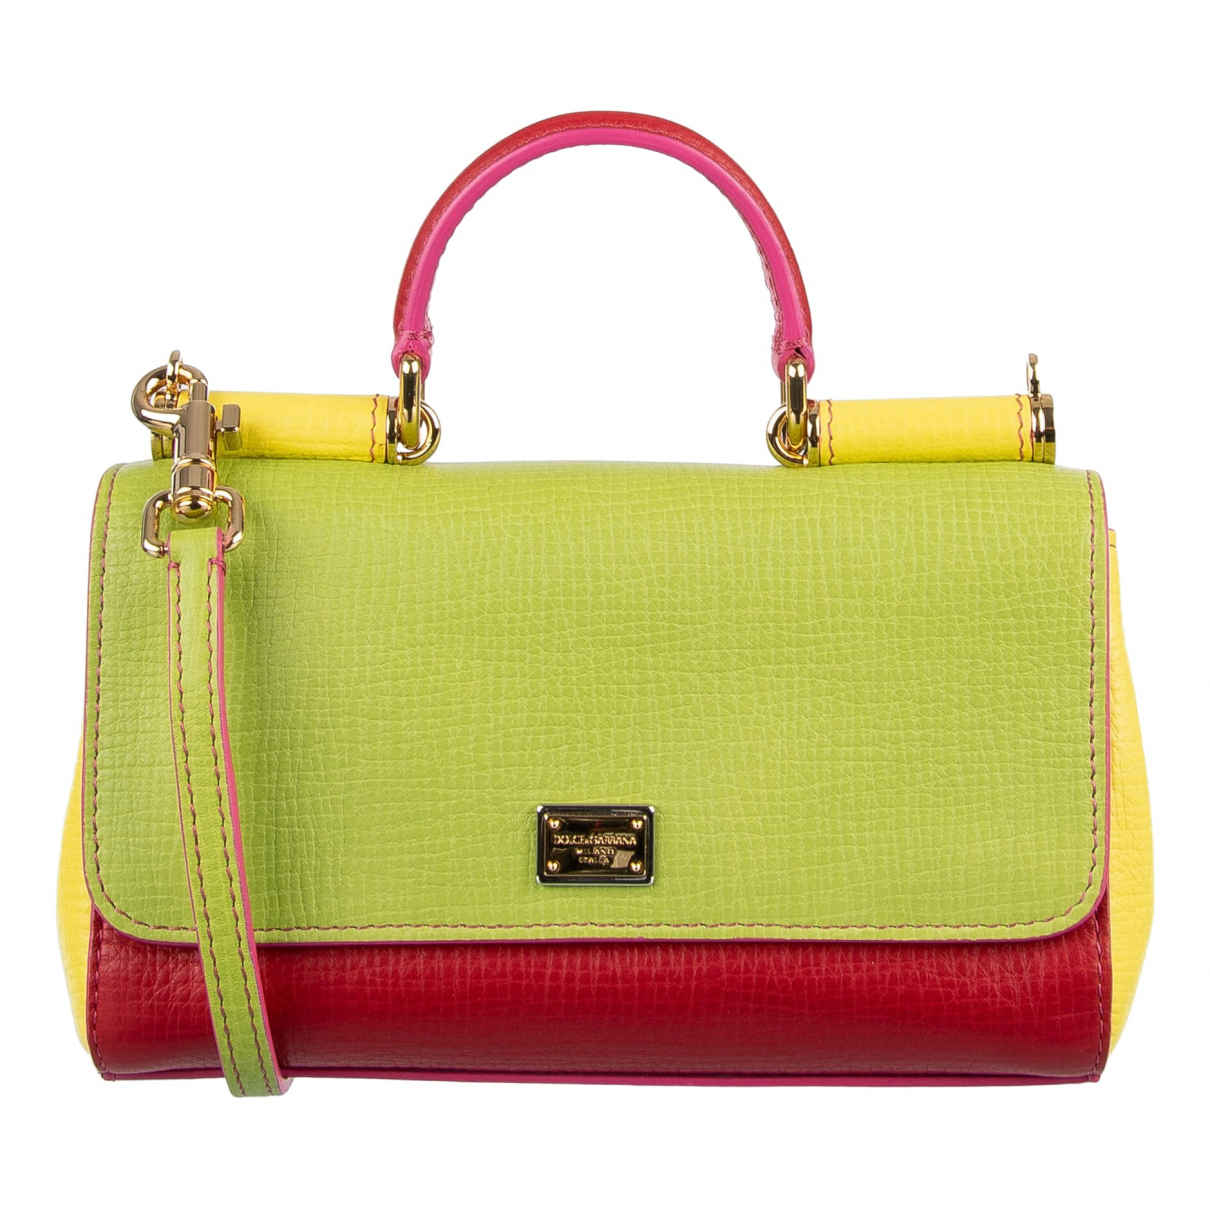 Dolce & Gabbana Sicily Green Leather handbag for Women \N